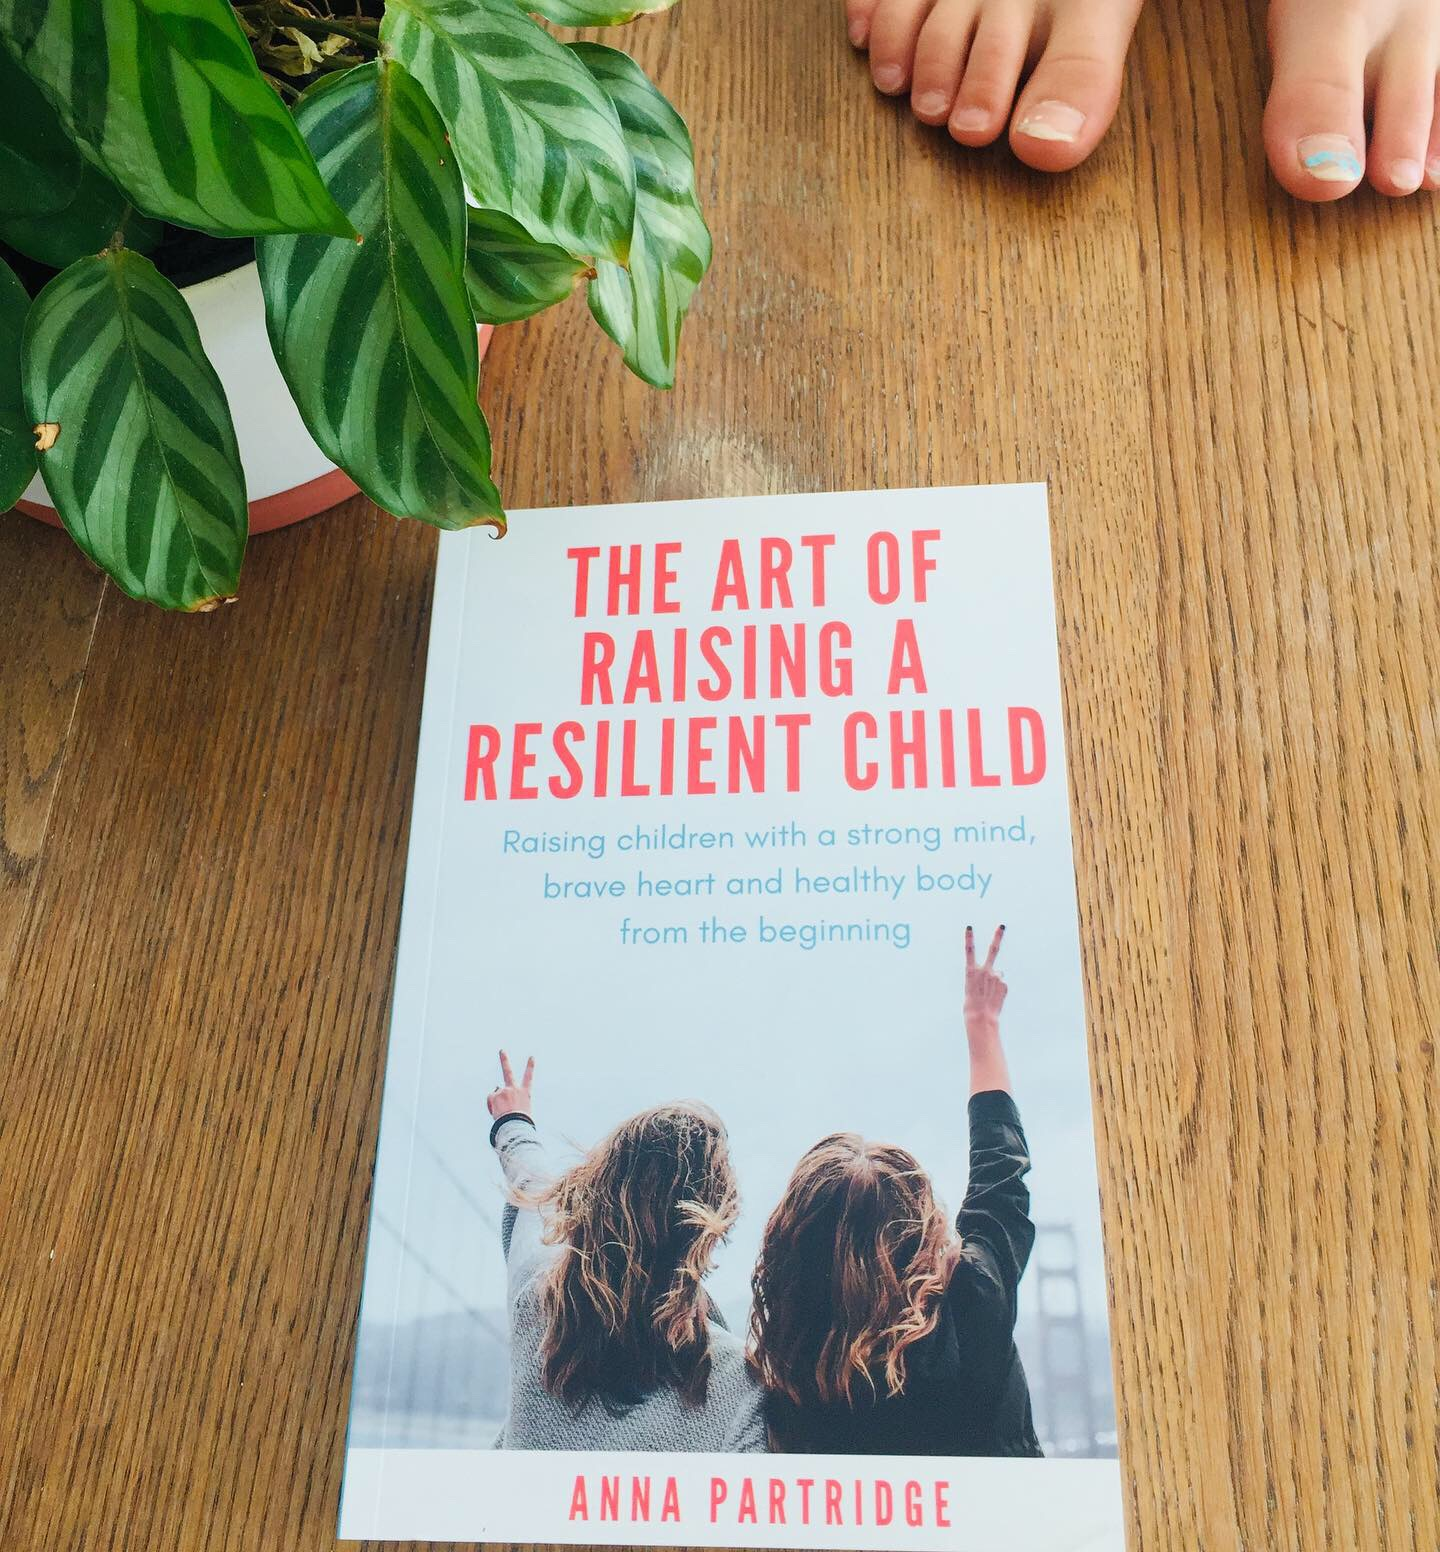 The Art of Raising a Resilient Child – my book out now!